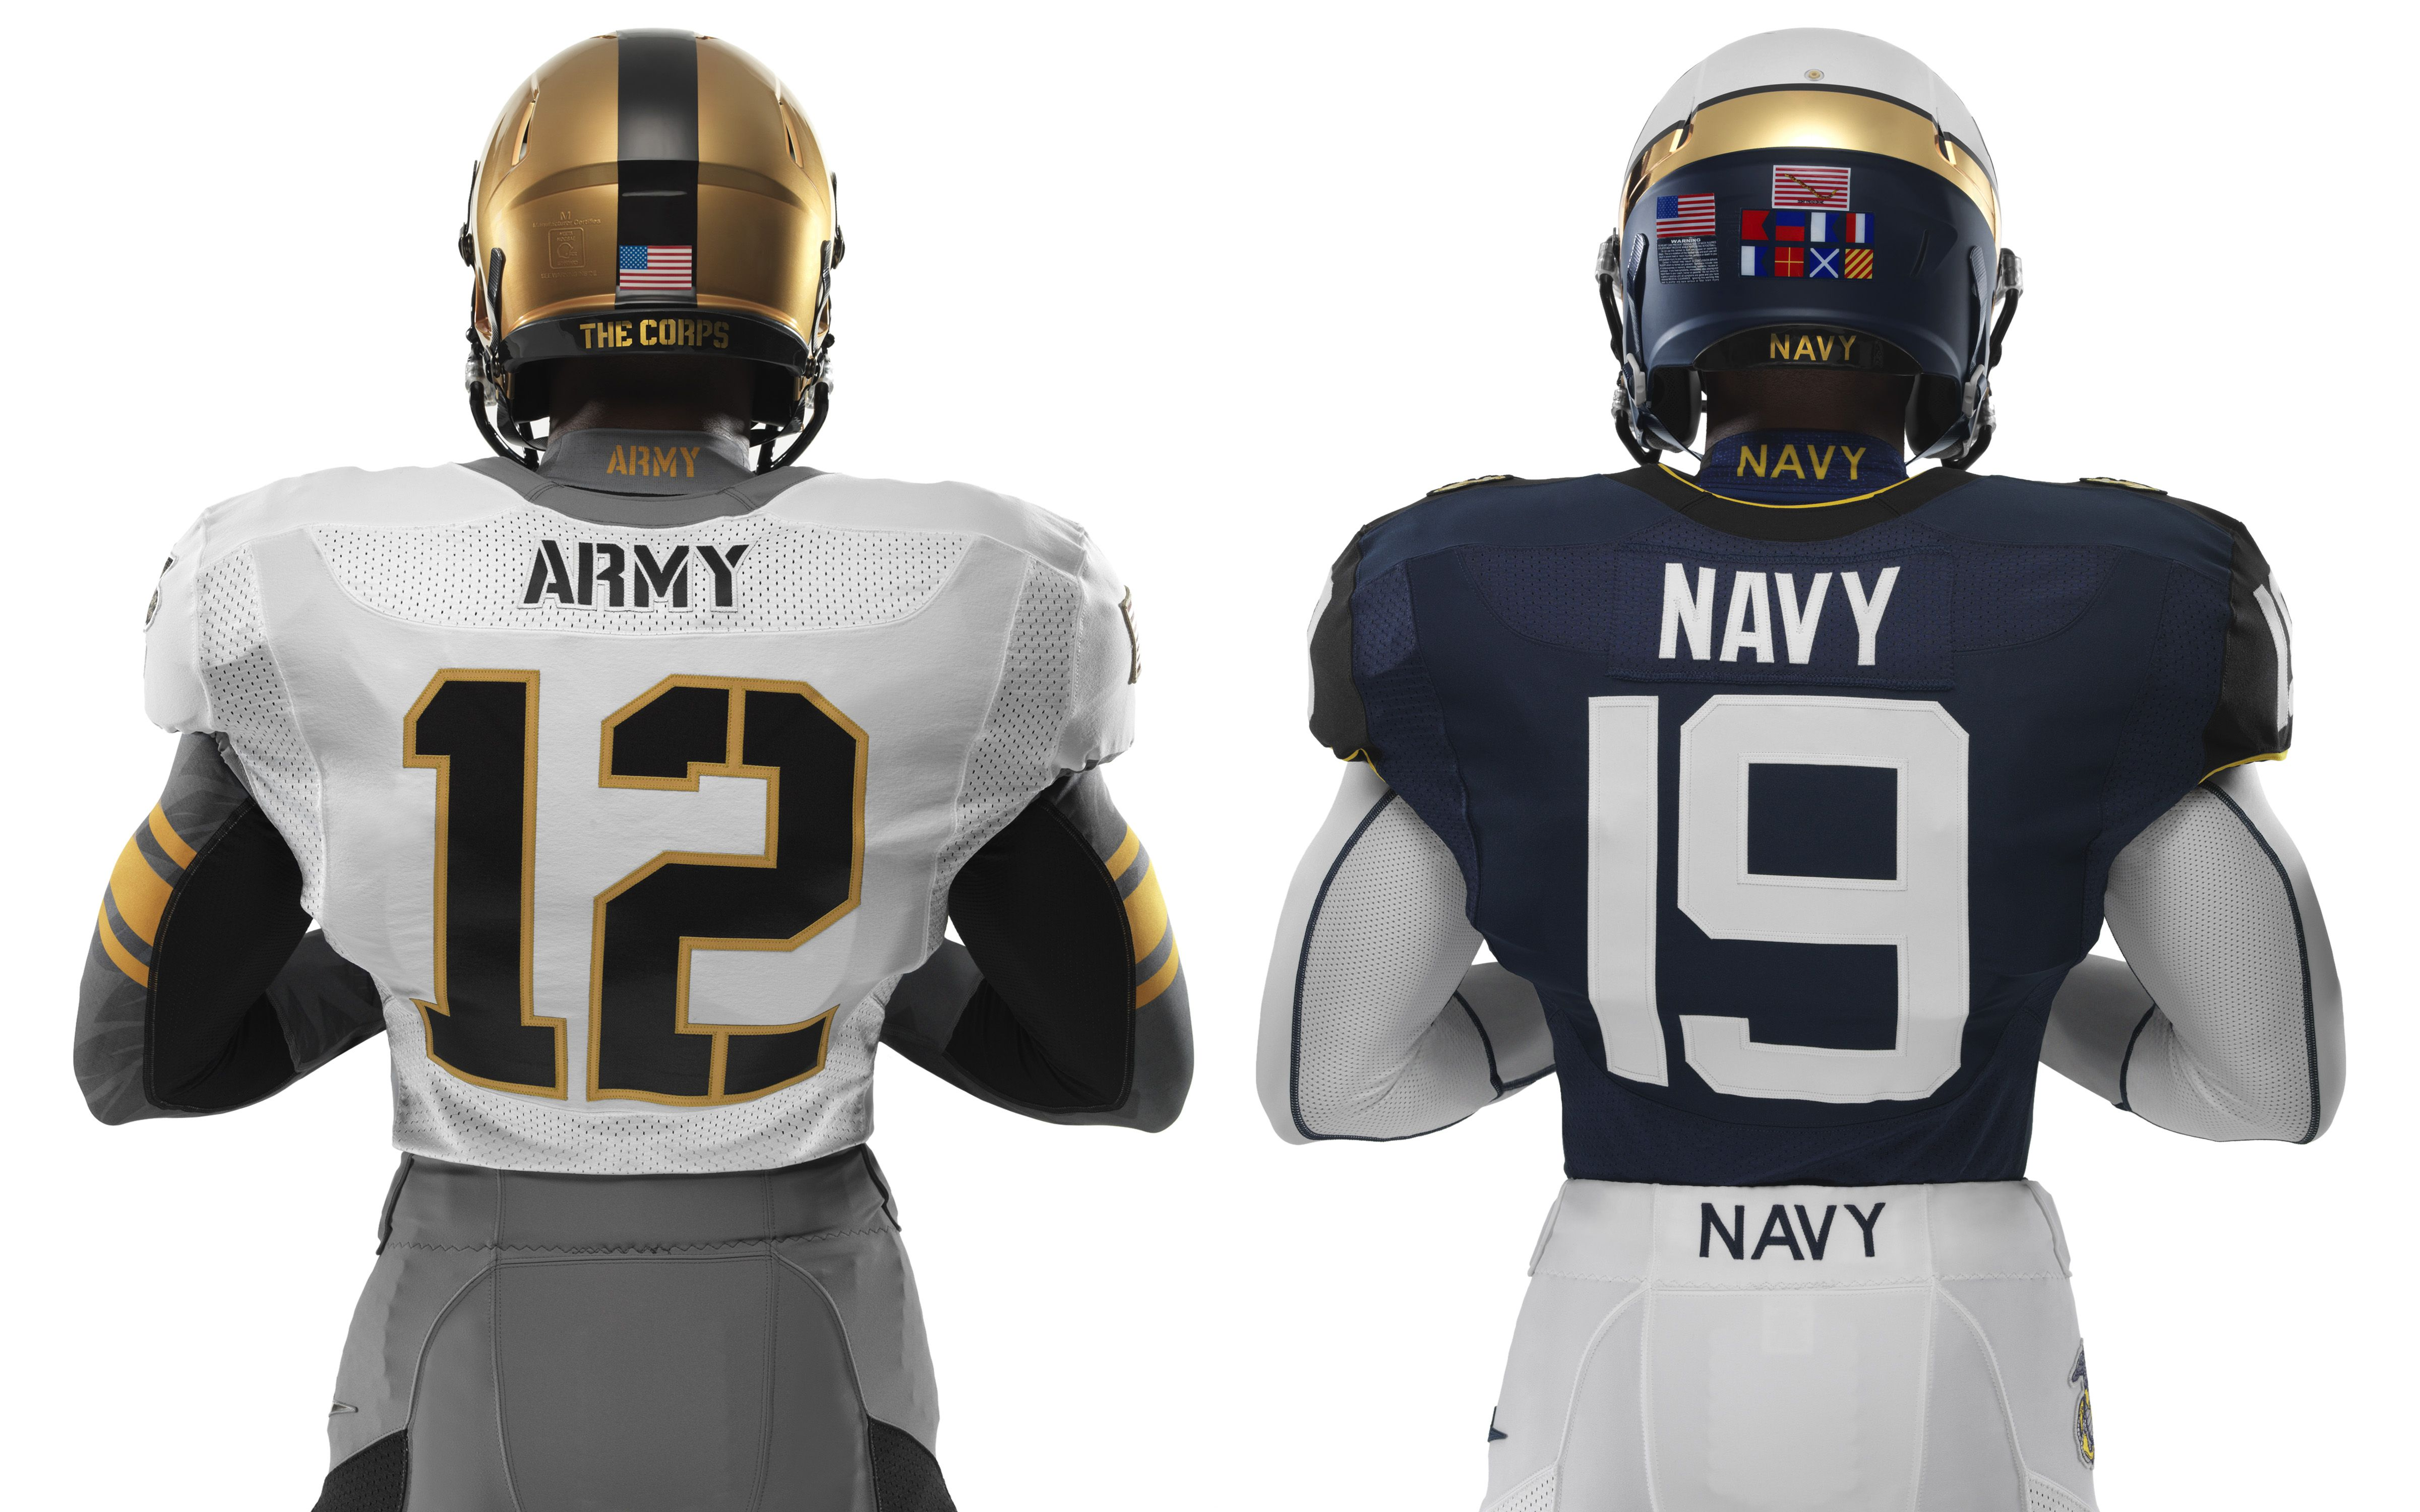 The back of Army and Navy's uniforms for the ArmyNavy